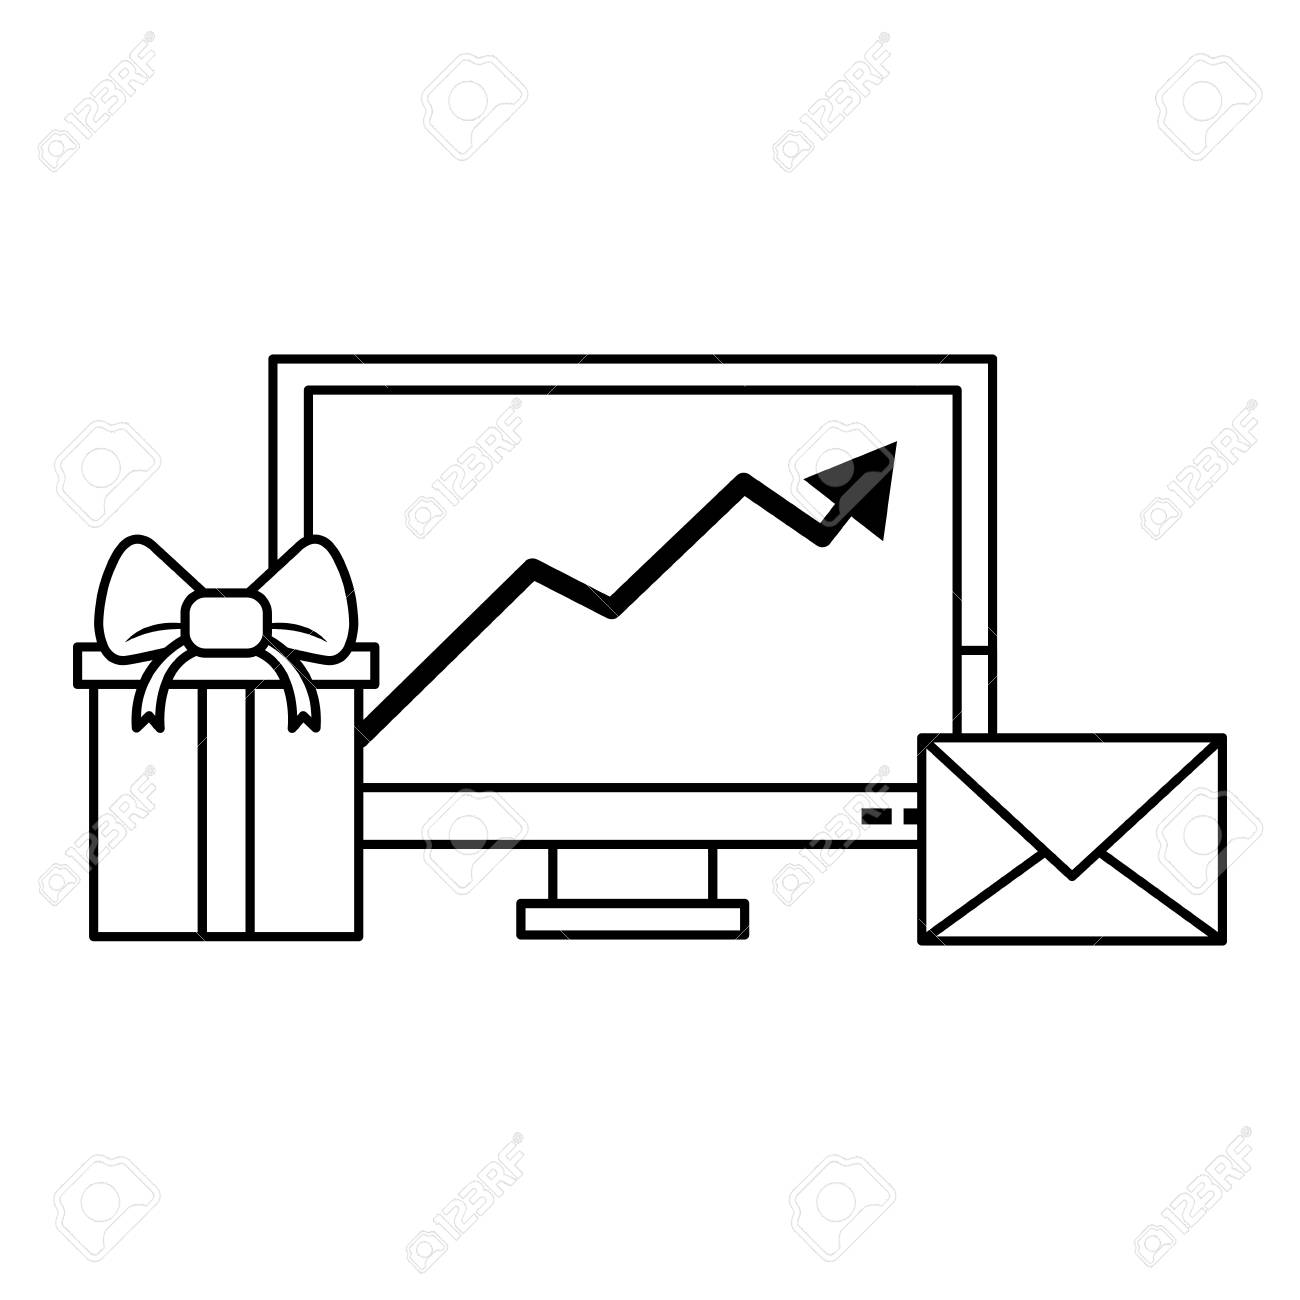 Gift delivery business tendency data logistic communication correspondance graph vector illustration graphic desing - 123254659